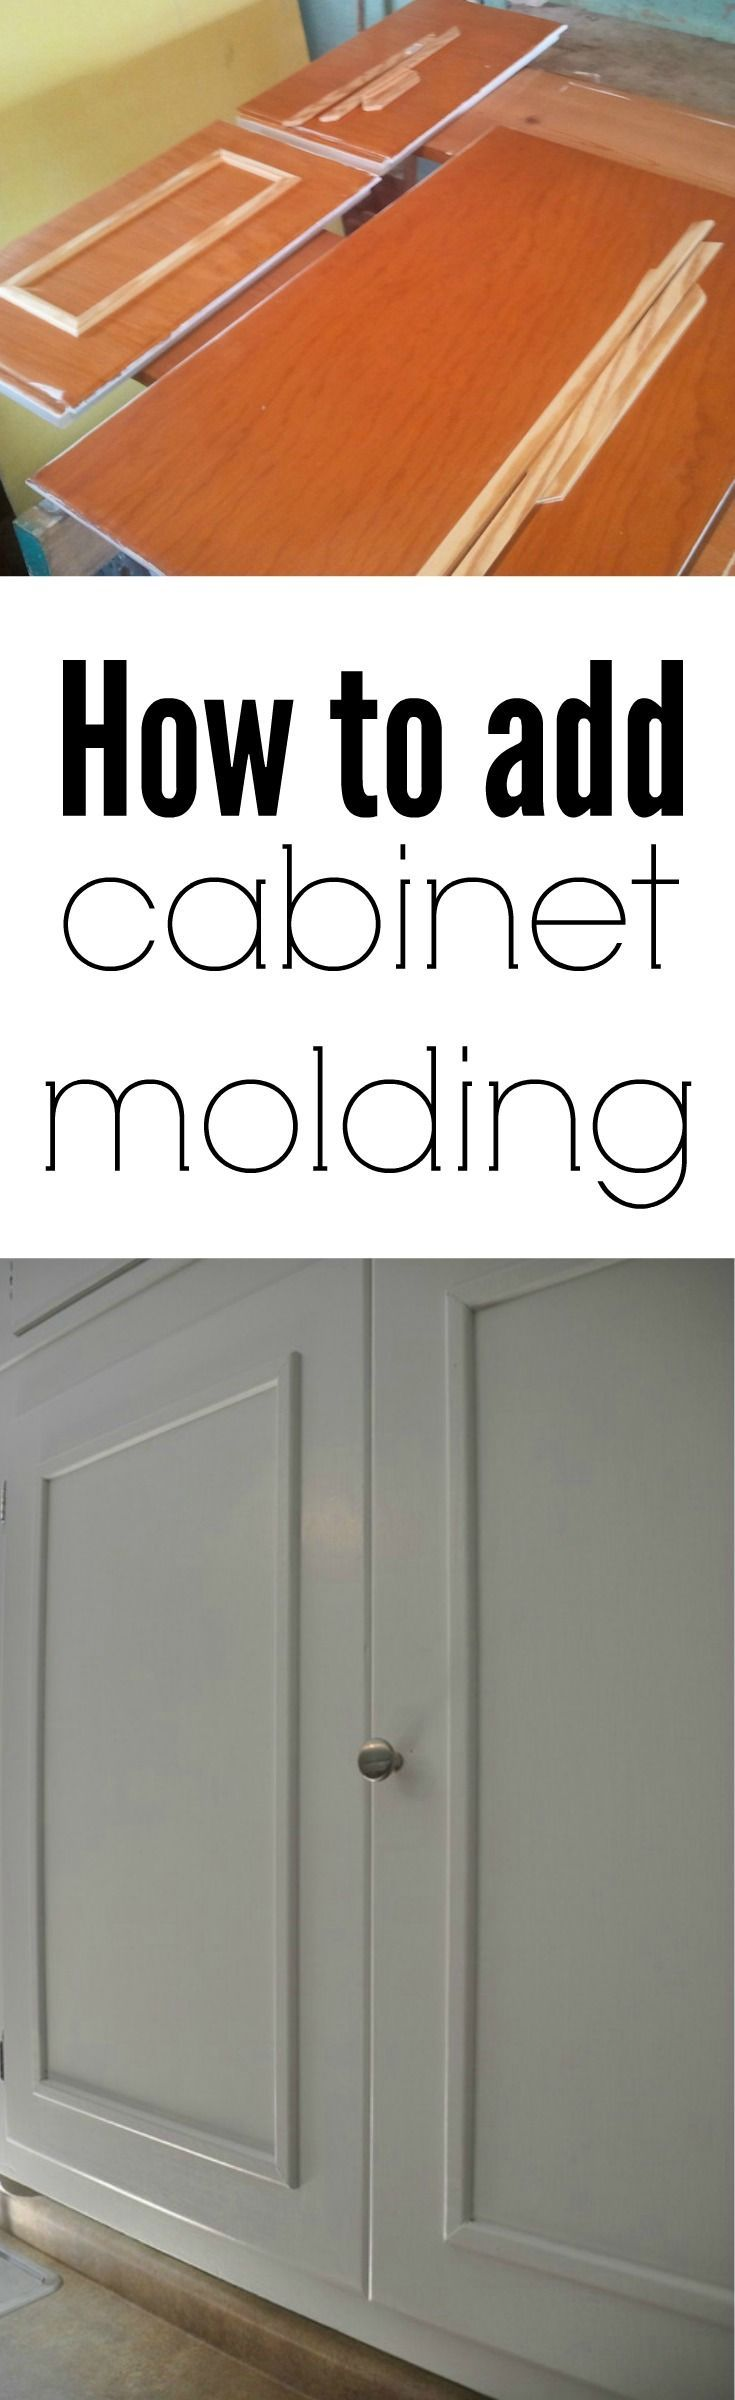 old cabinets kitchen cabinet updates How to Add Cabinet Molding